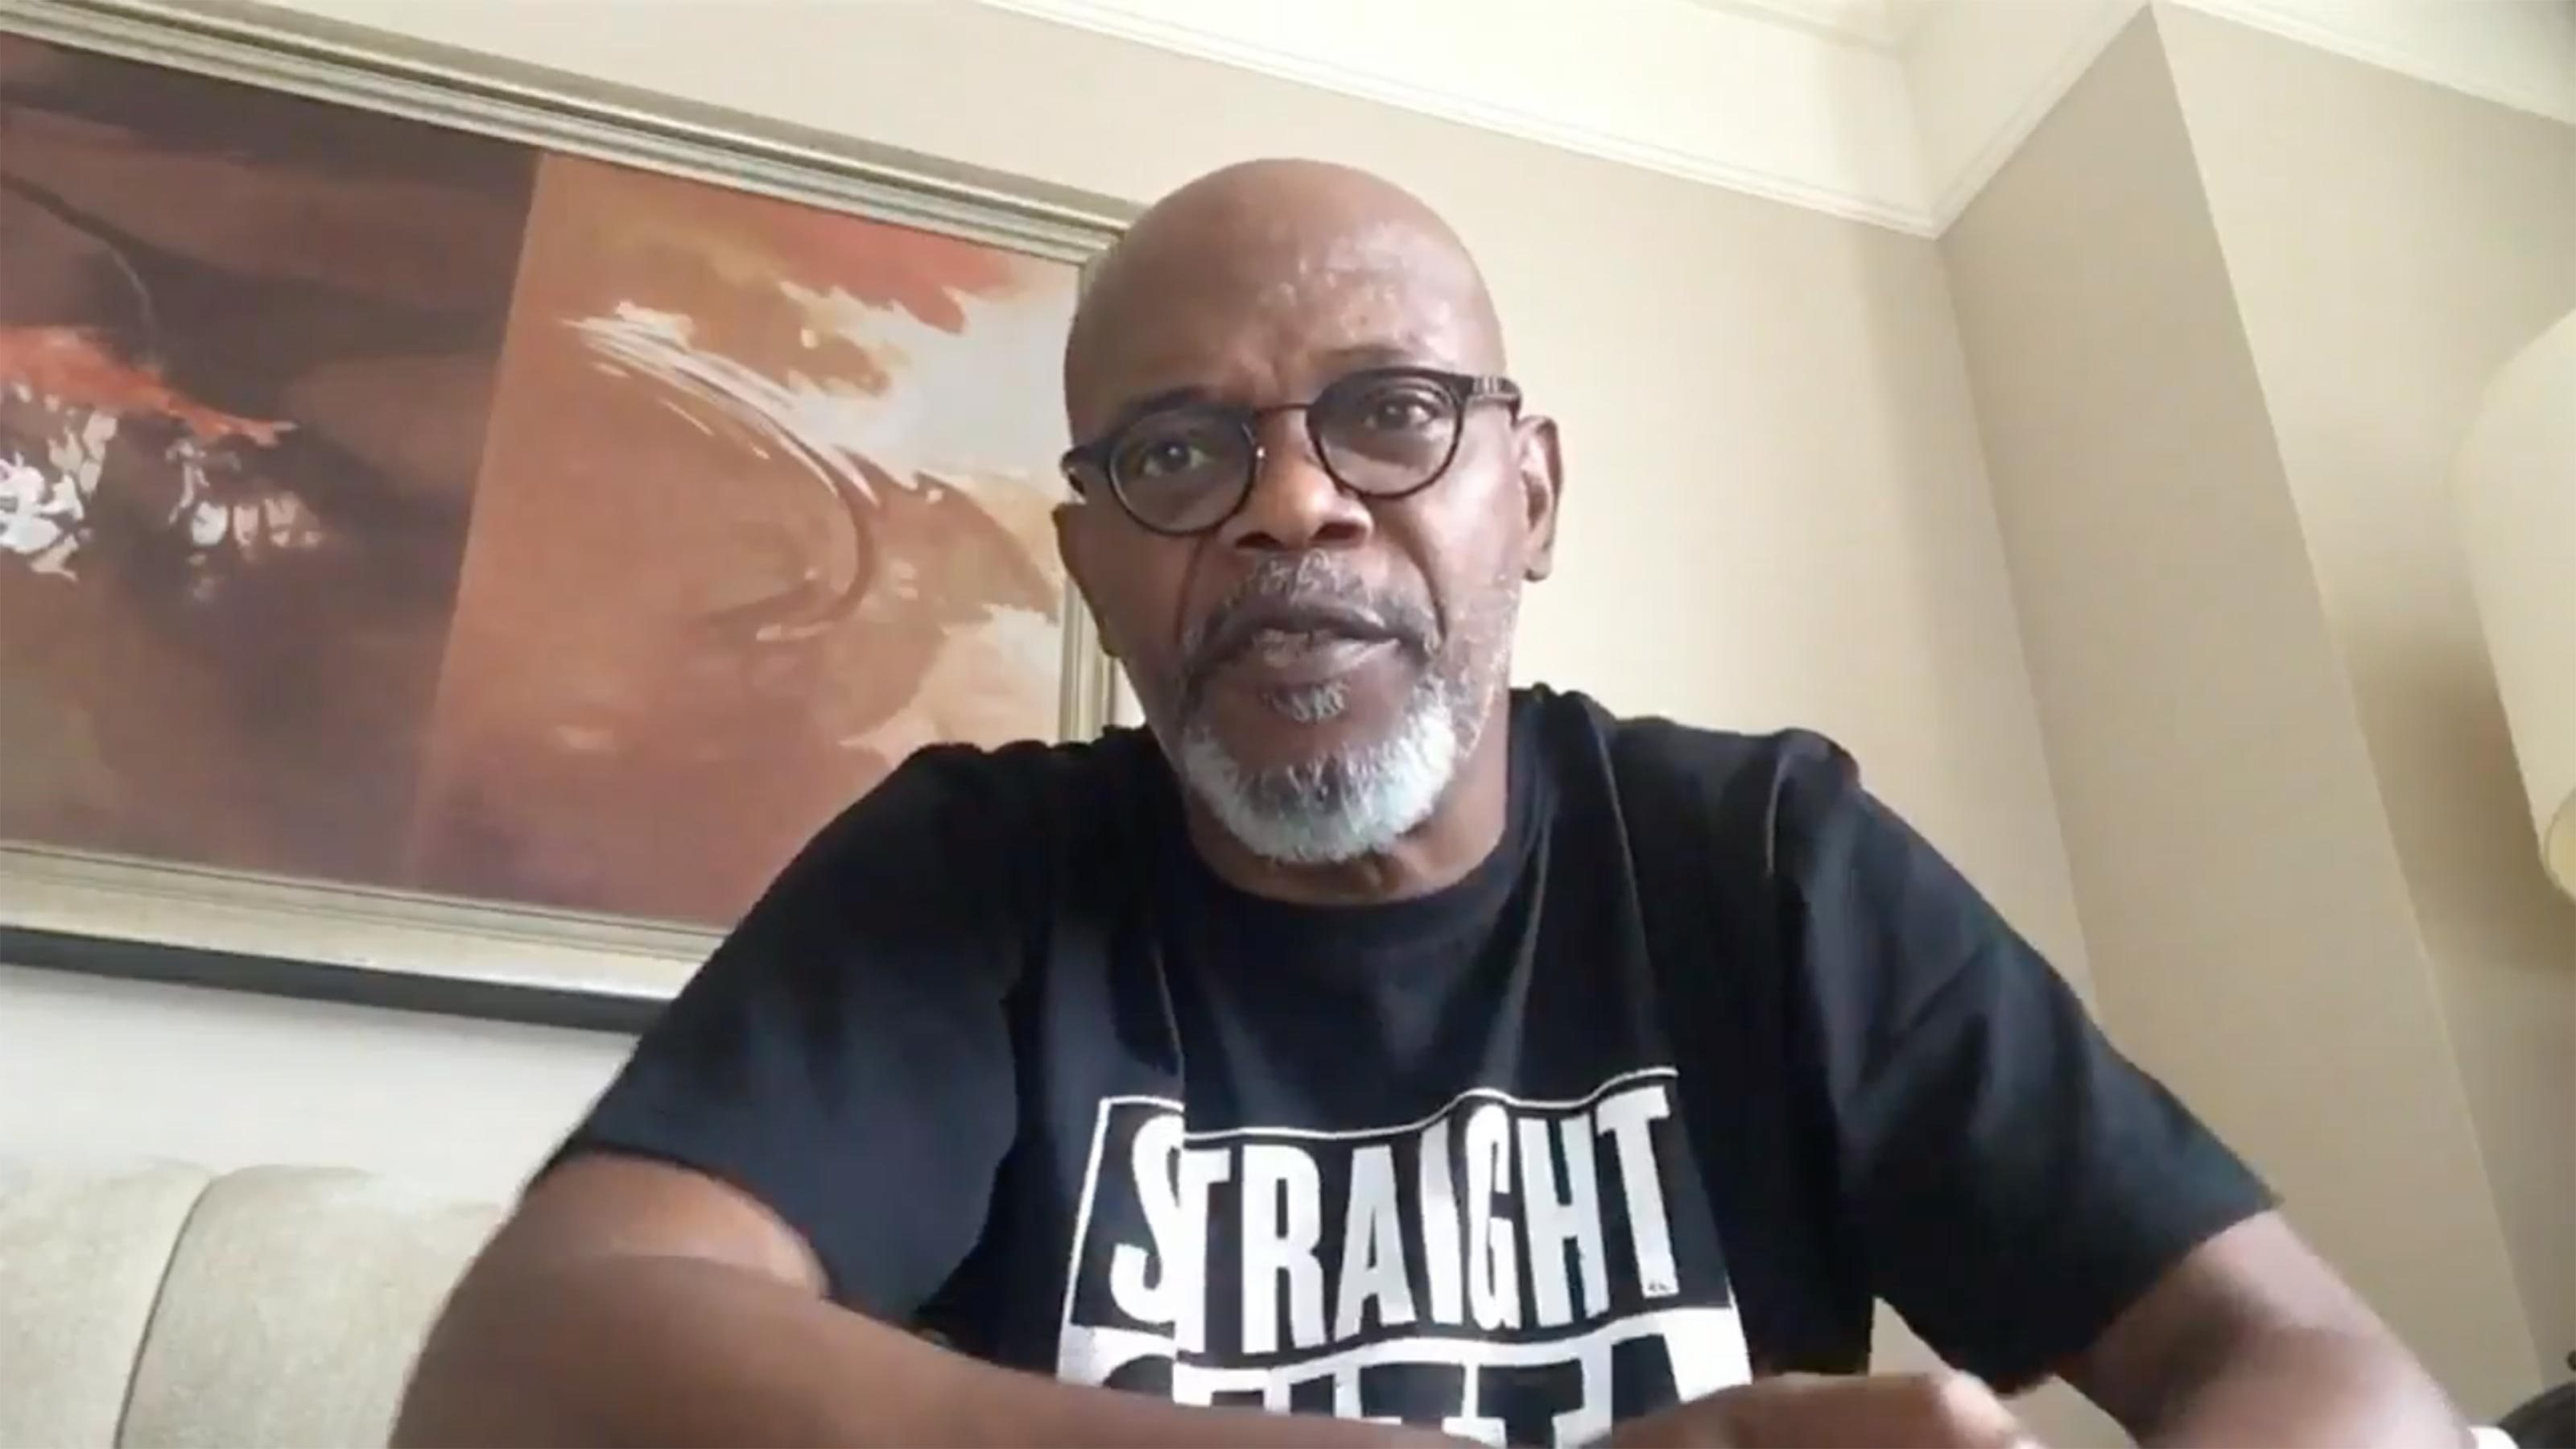 Samuel L. Jackson continued to lobby at Star Wars Celebration for his character's return.